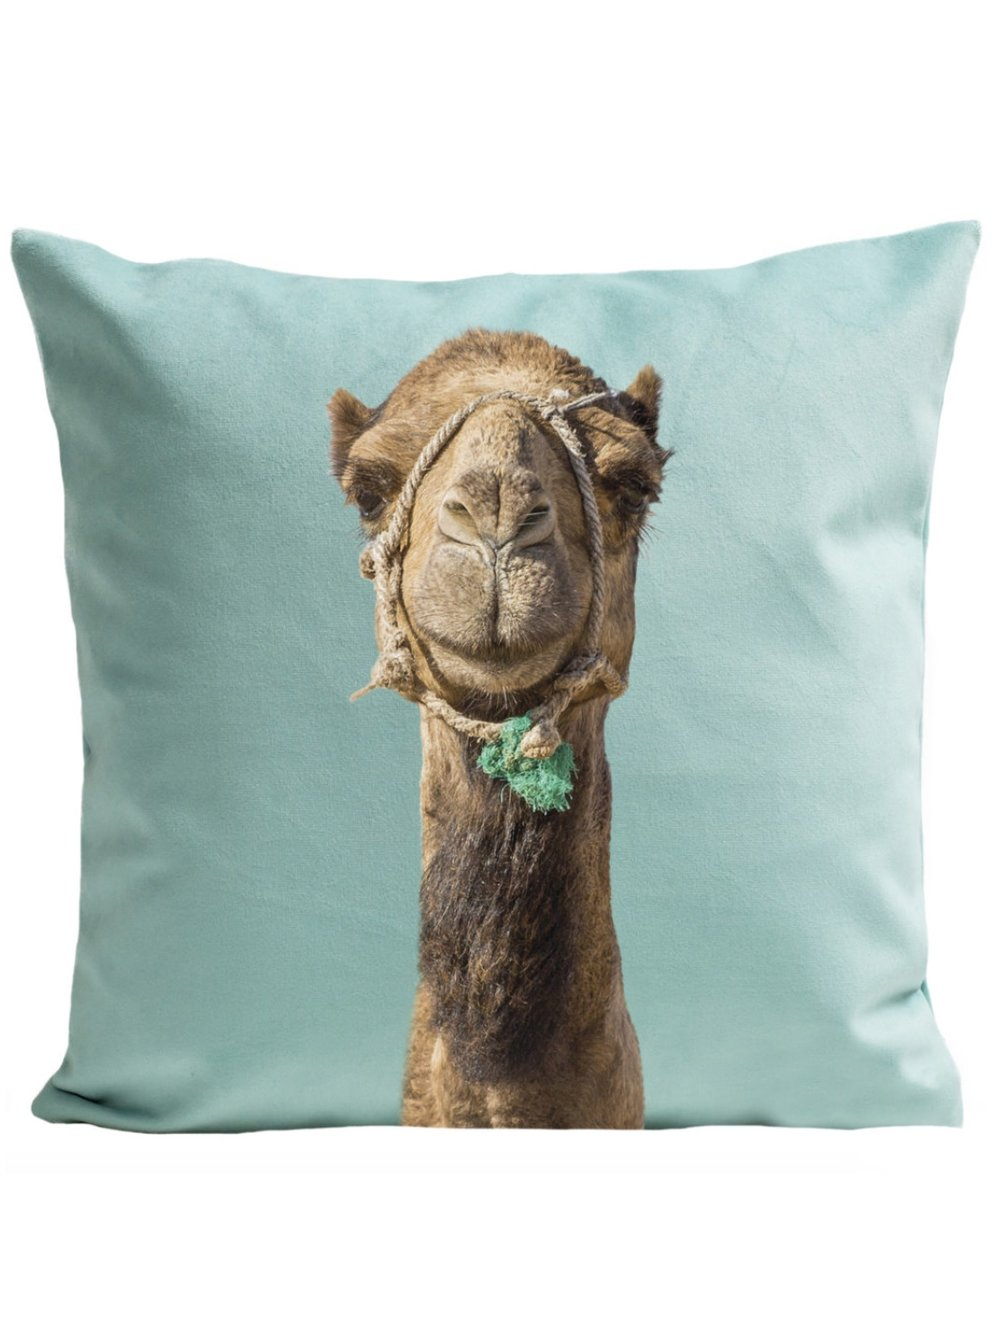 Best Vegan Pillow: Camel Pillow by Art Pilo